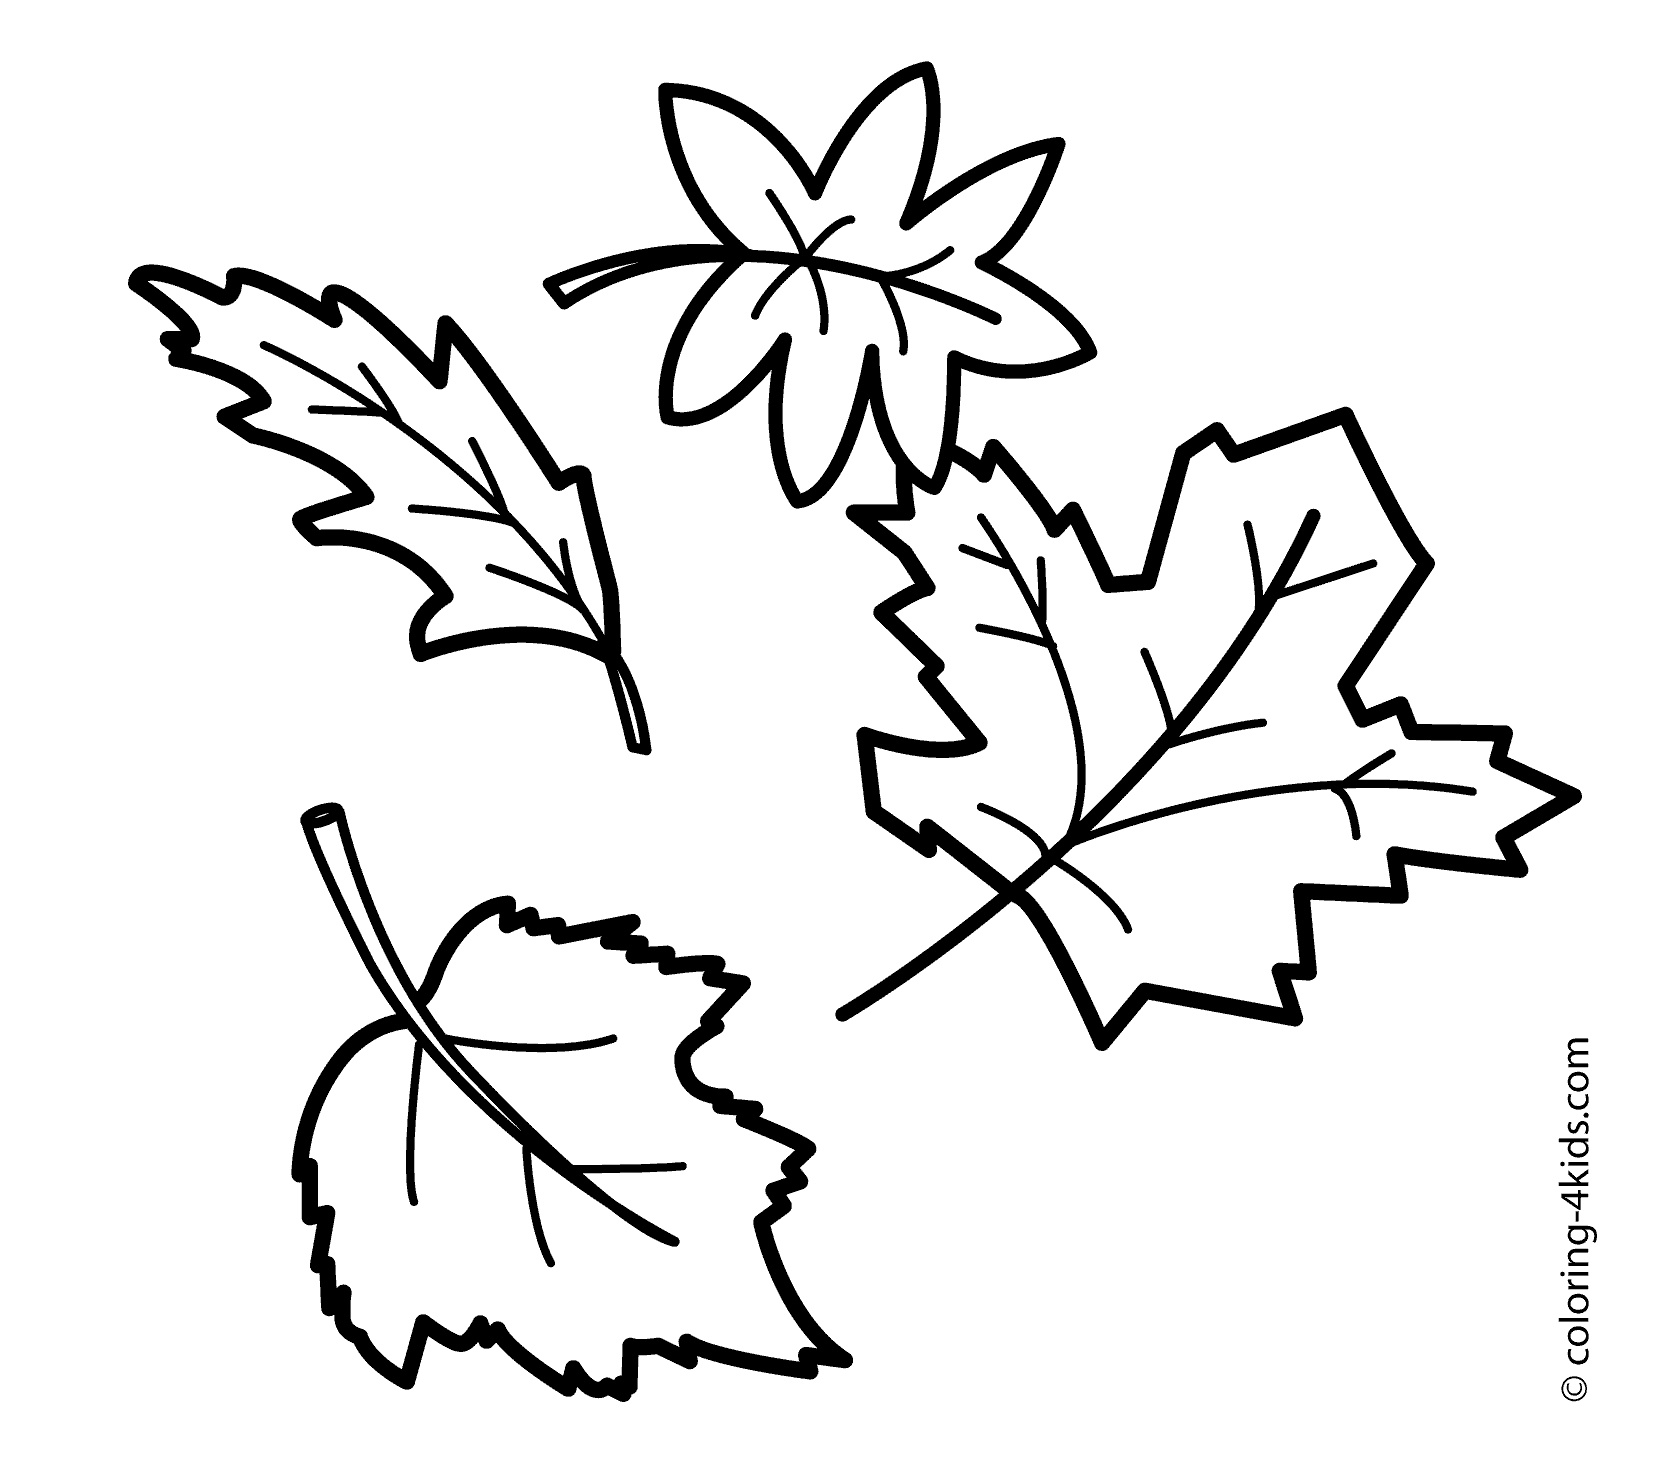 coloring pictures leaves a lot of maple autumn leaf coloring page netart pictures coloring leaves